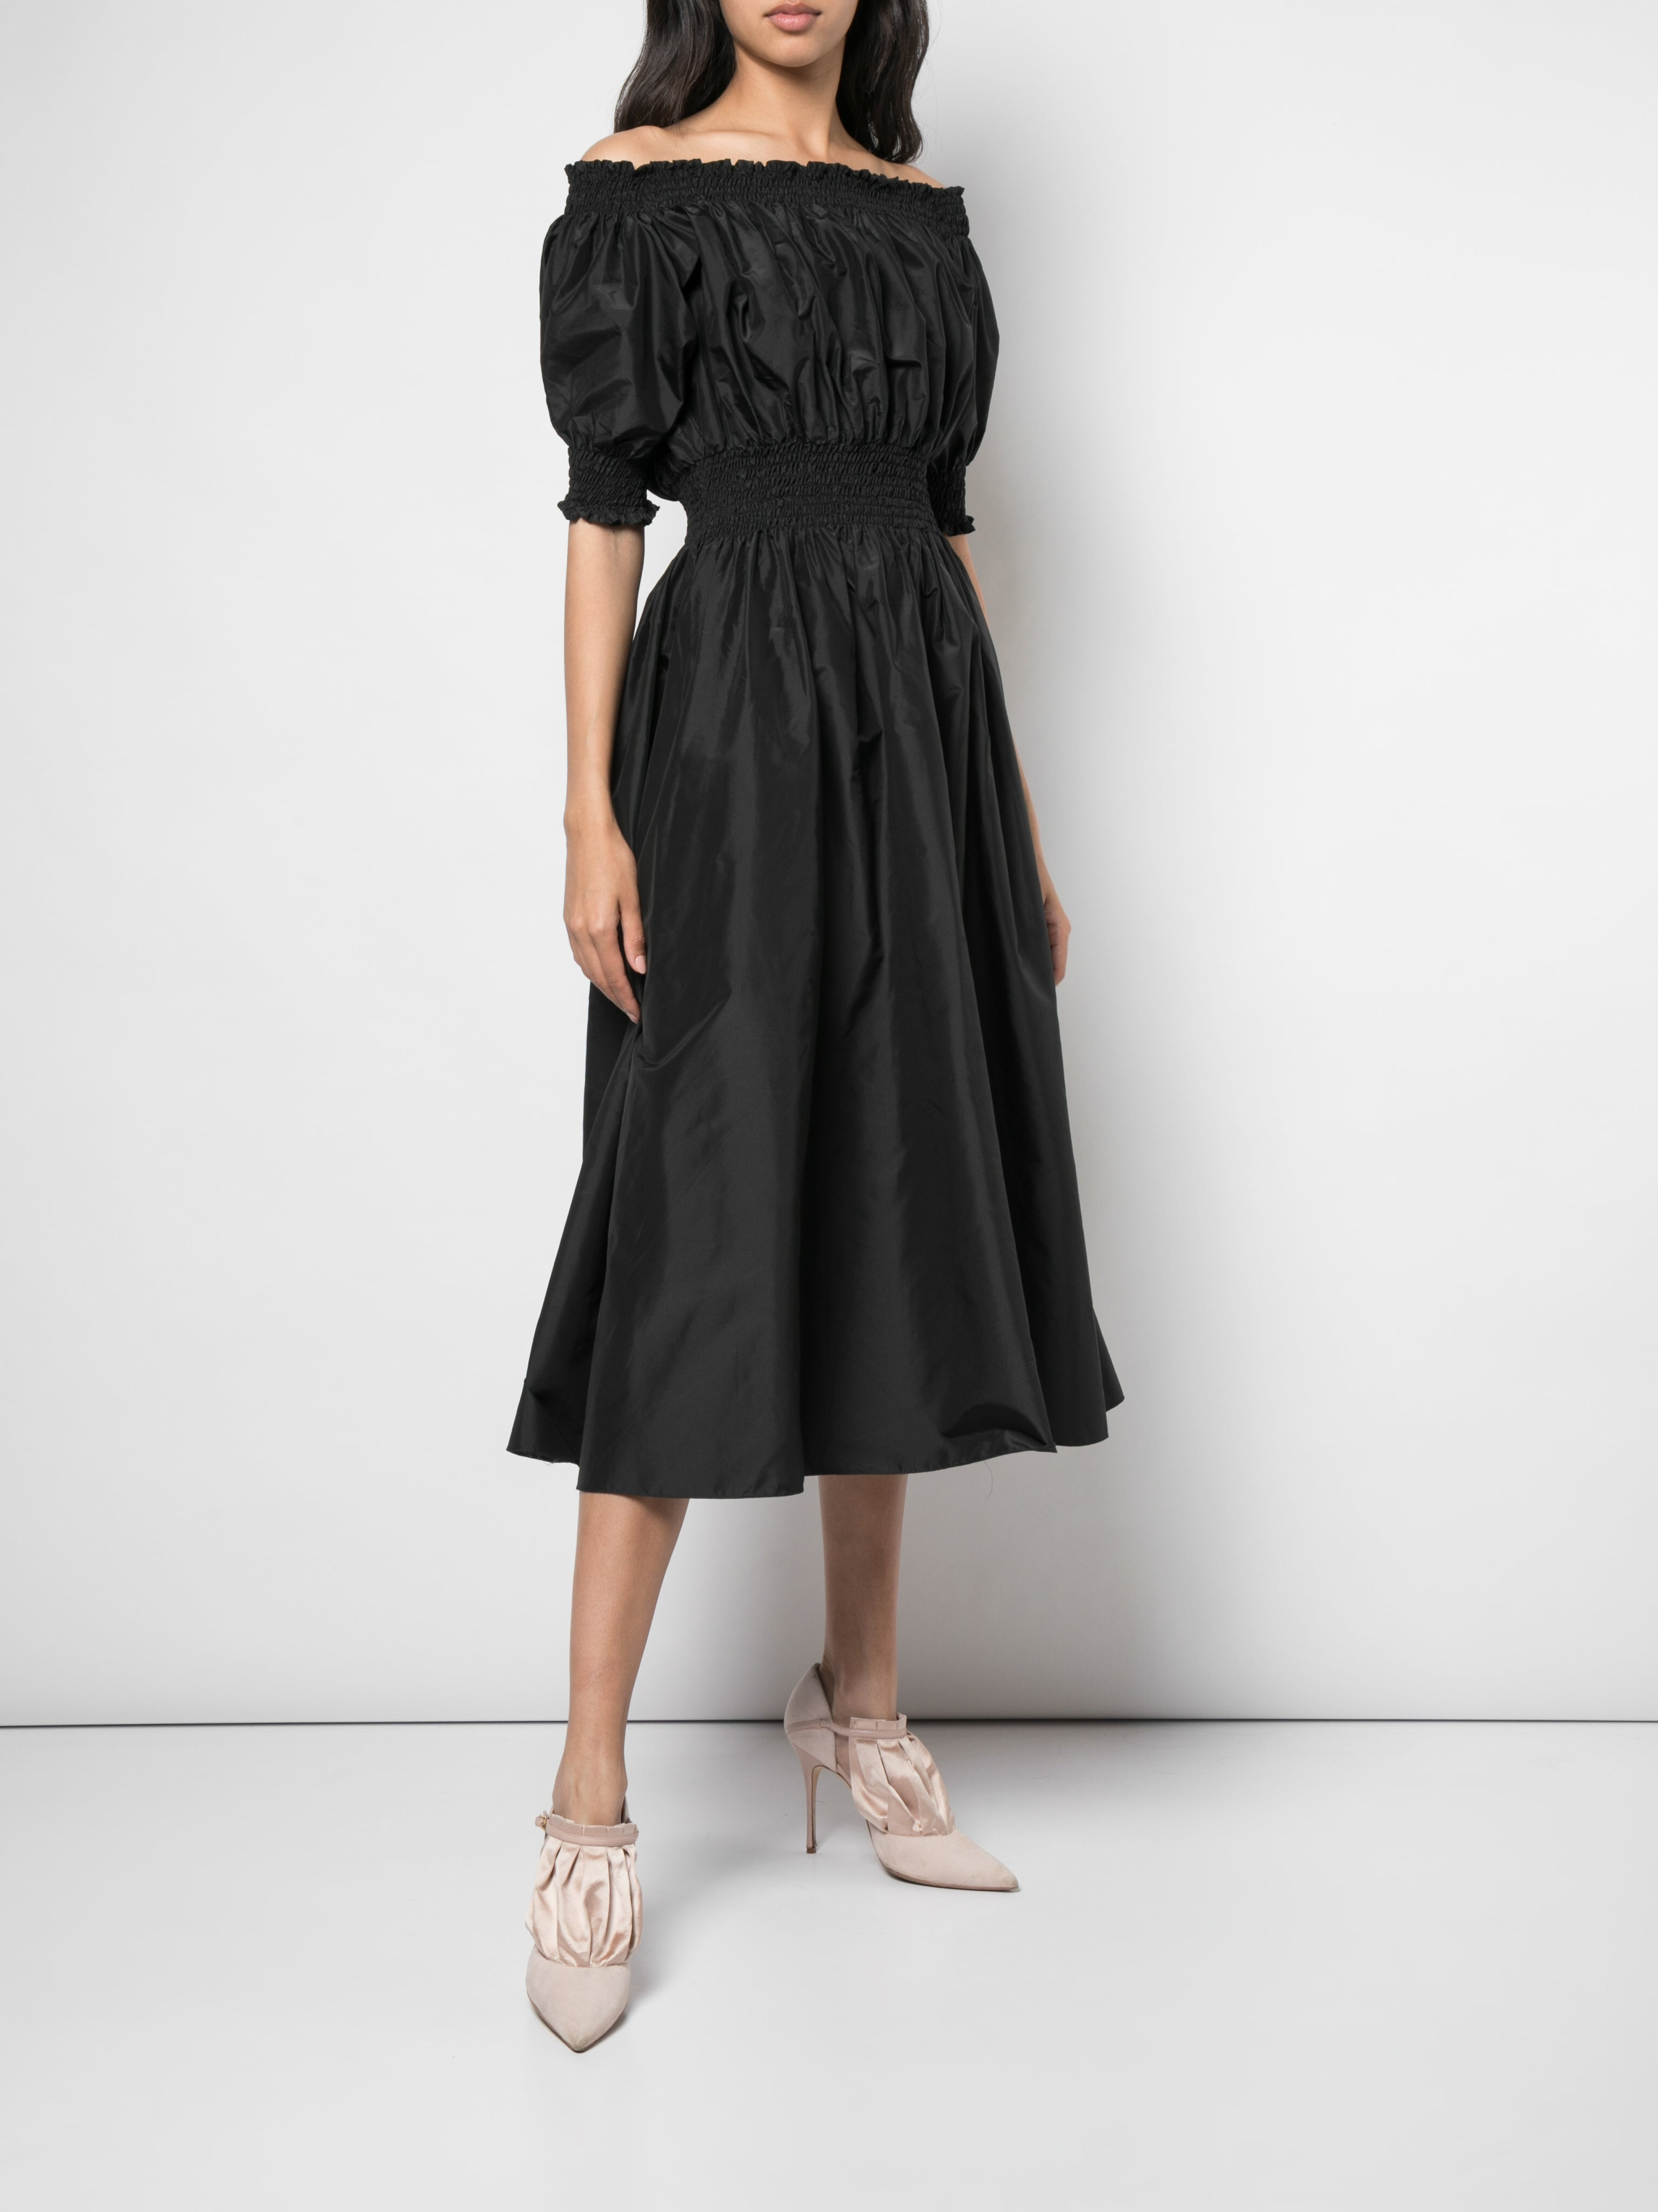 OFF-THE-SHOULDER SMOCKED DRESS IN TAFFETA